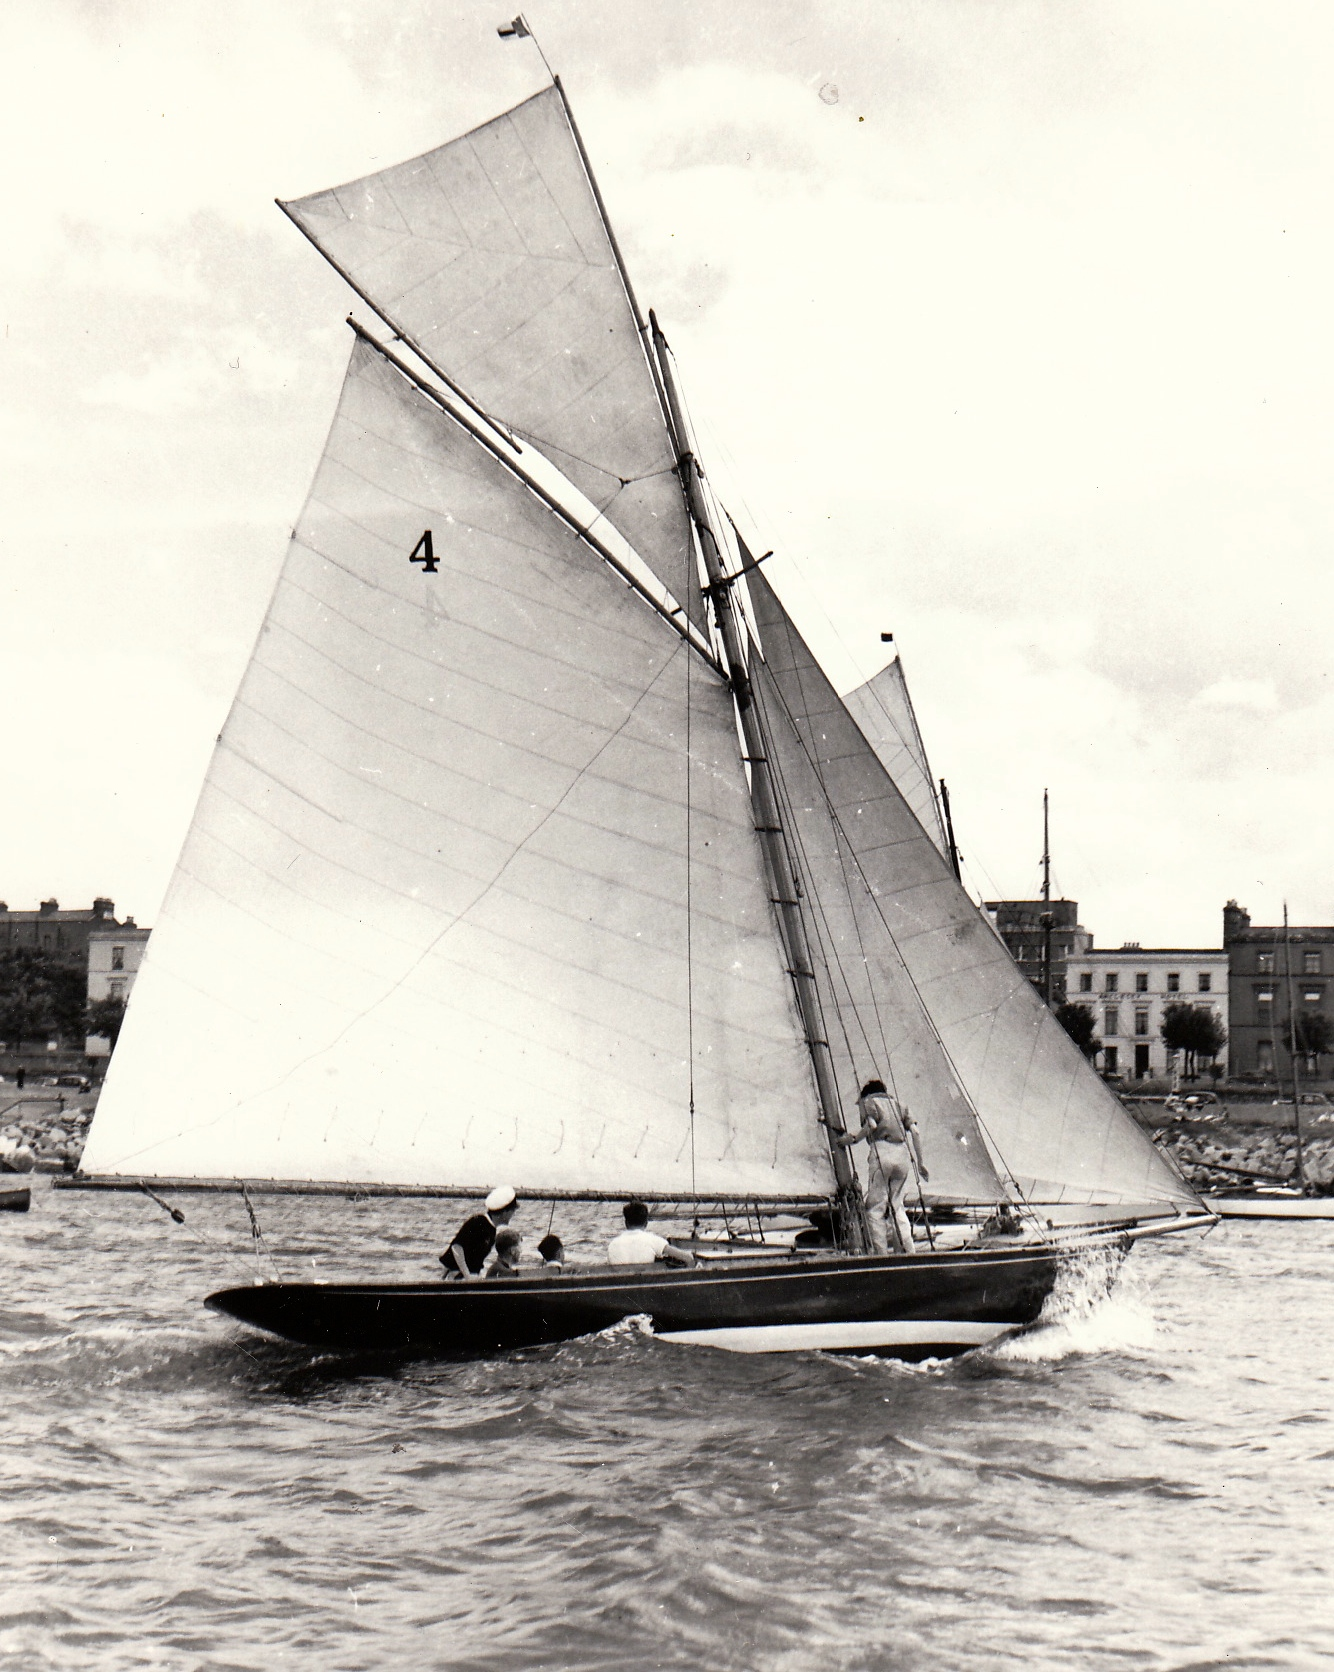 Dublin Bay 21 Keelboat